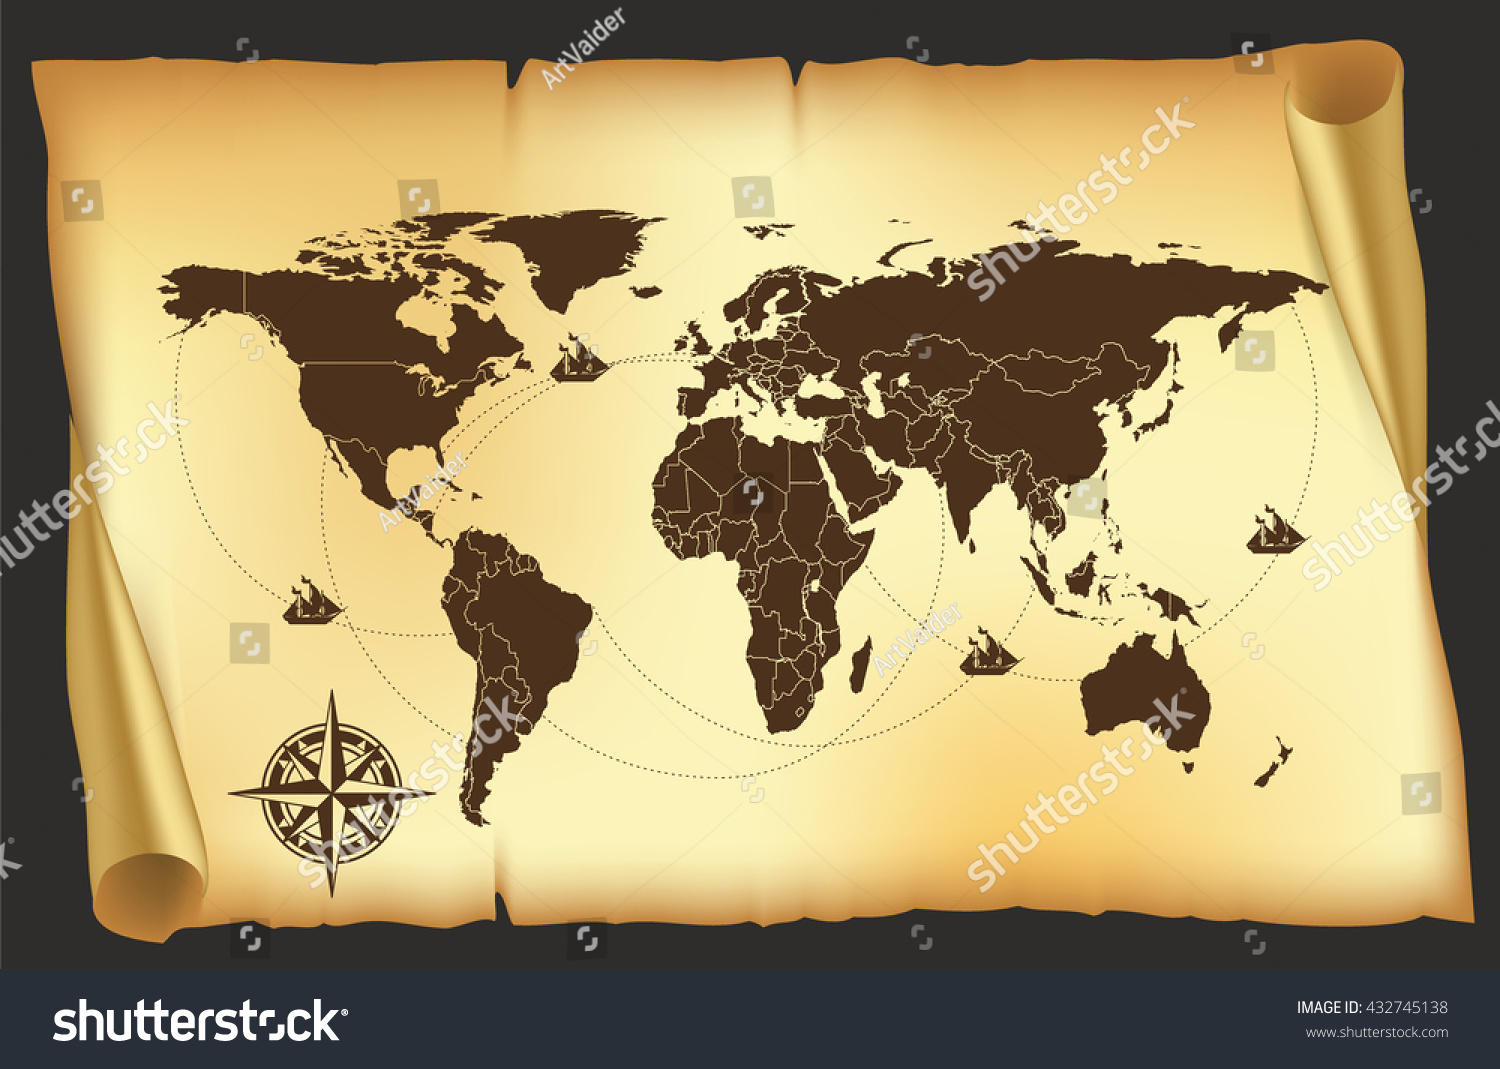 Map old map pirates map world stock vector 432745138 shutterstock map old map pirates map world map gumiabroncs Images